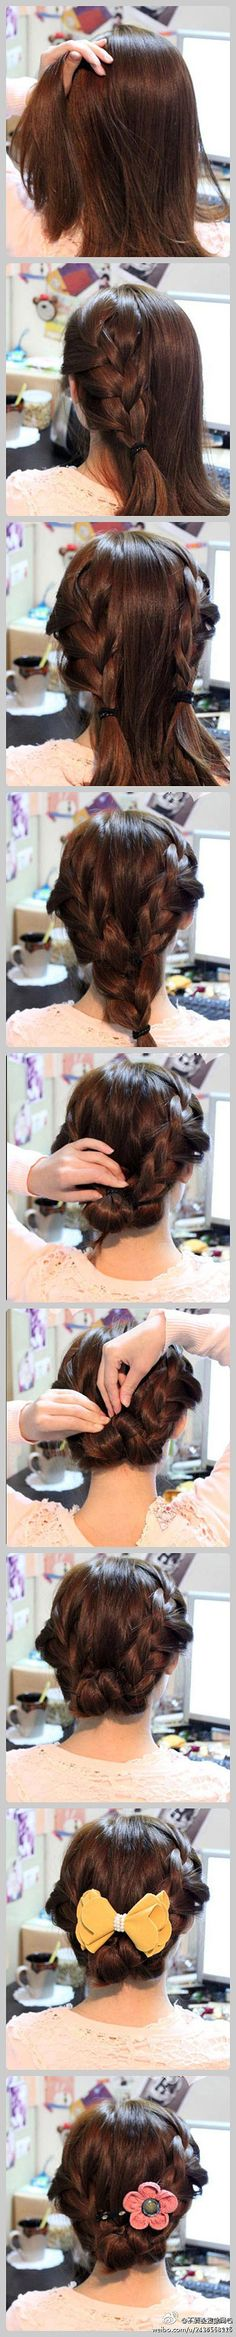 Pretty Braided Hair Style for medium length hair. I could even do this before school.